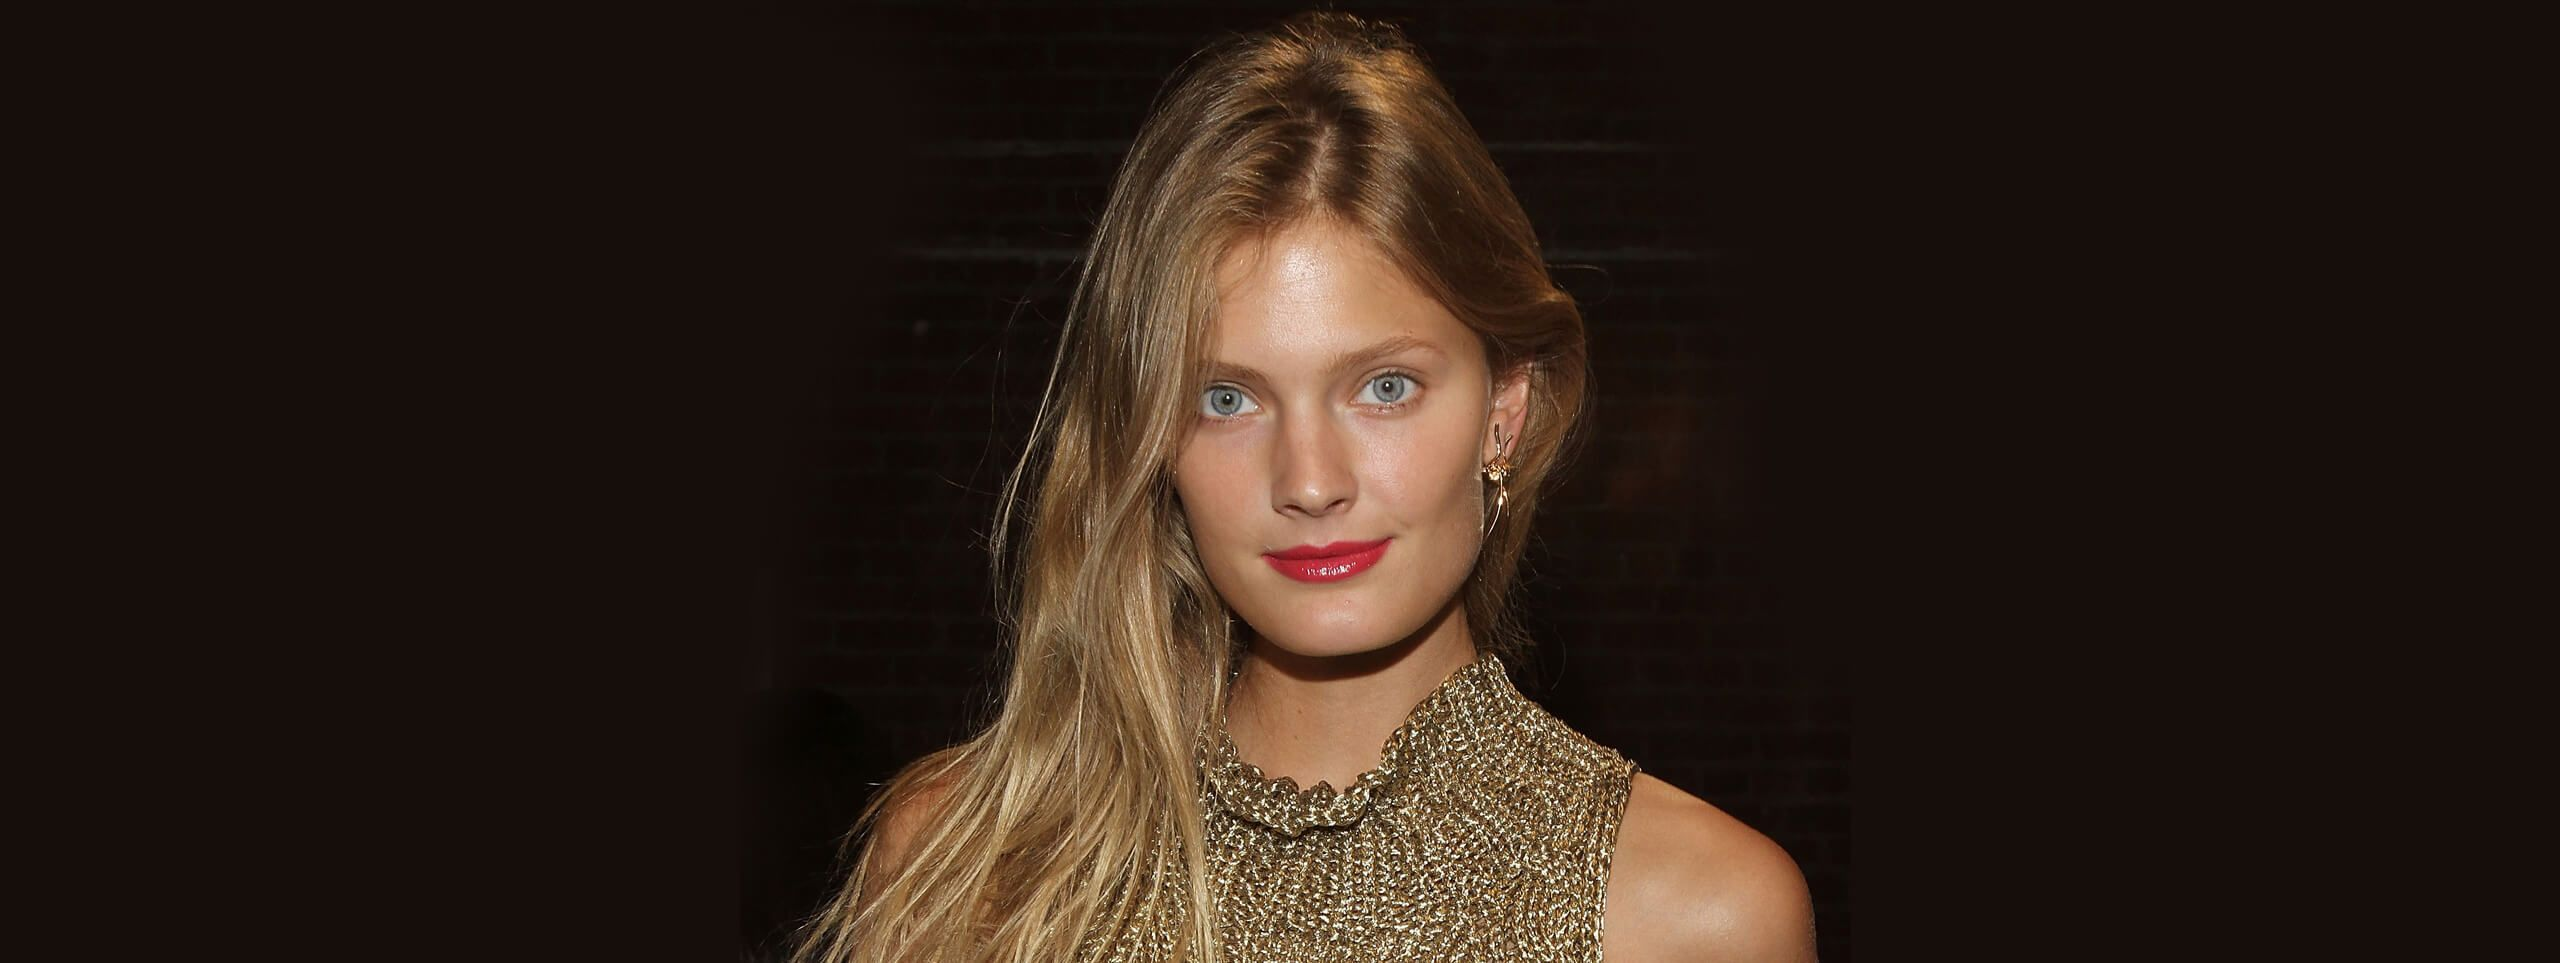 Constance Joblonski with long and shiny hairstyle